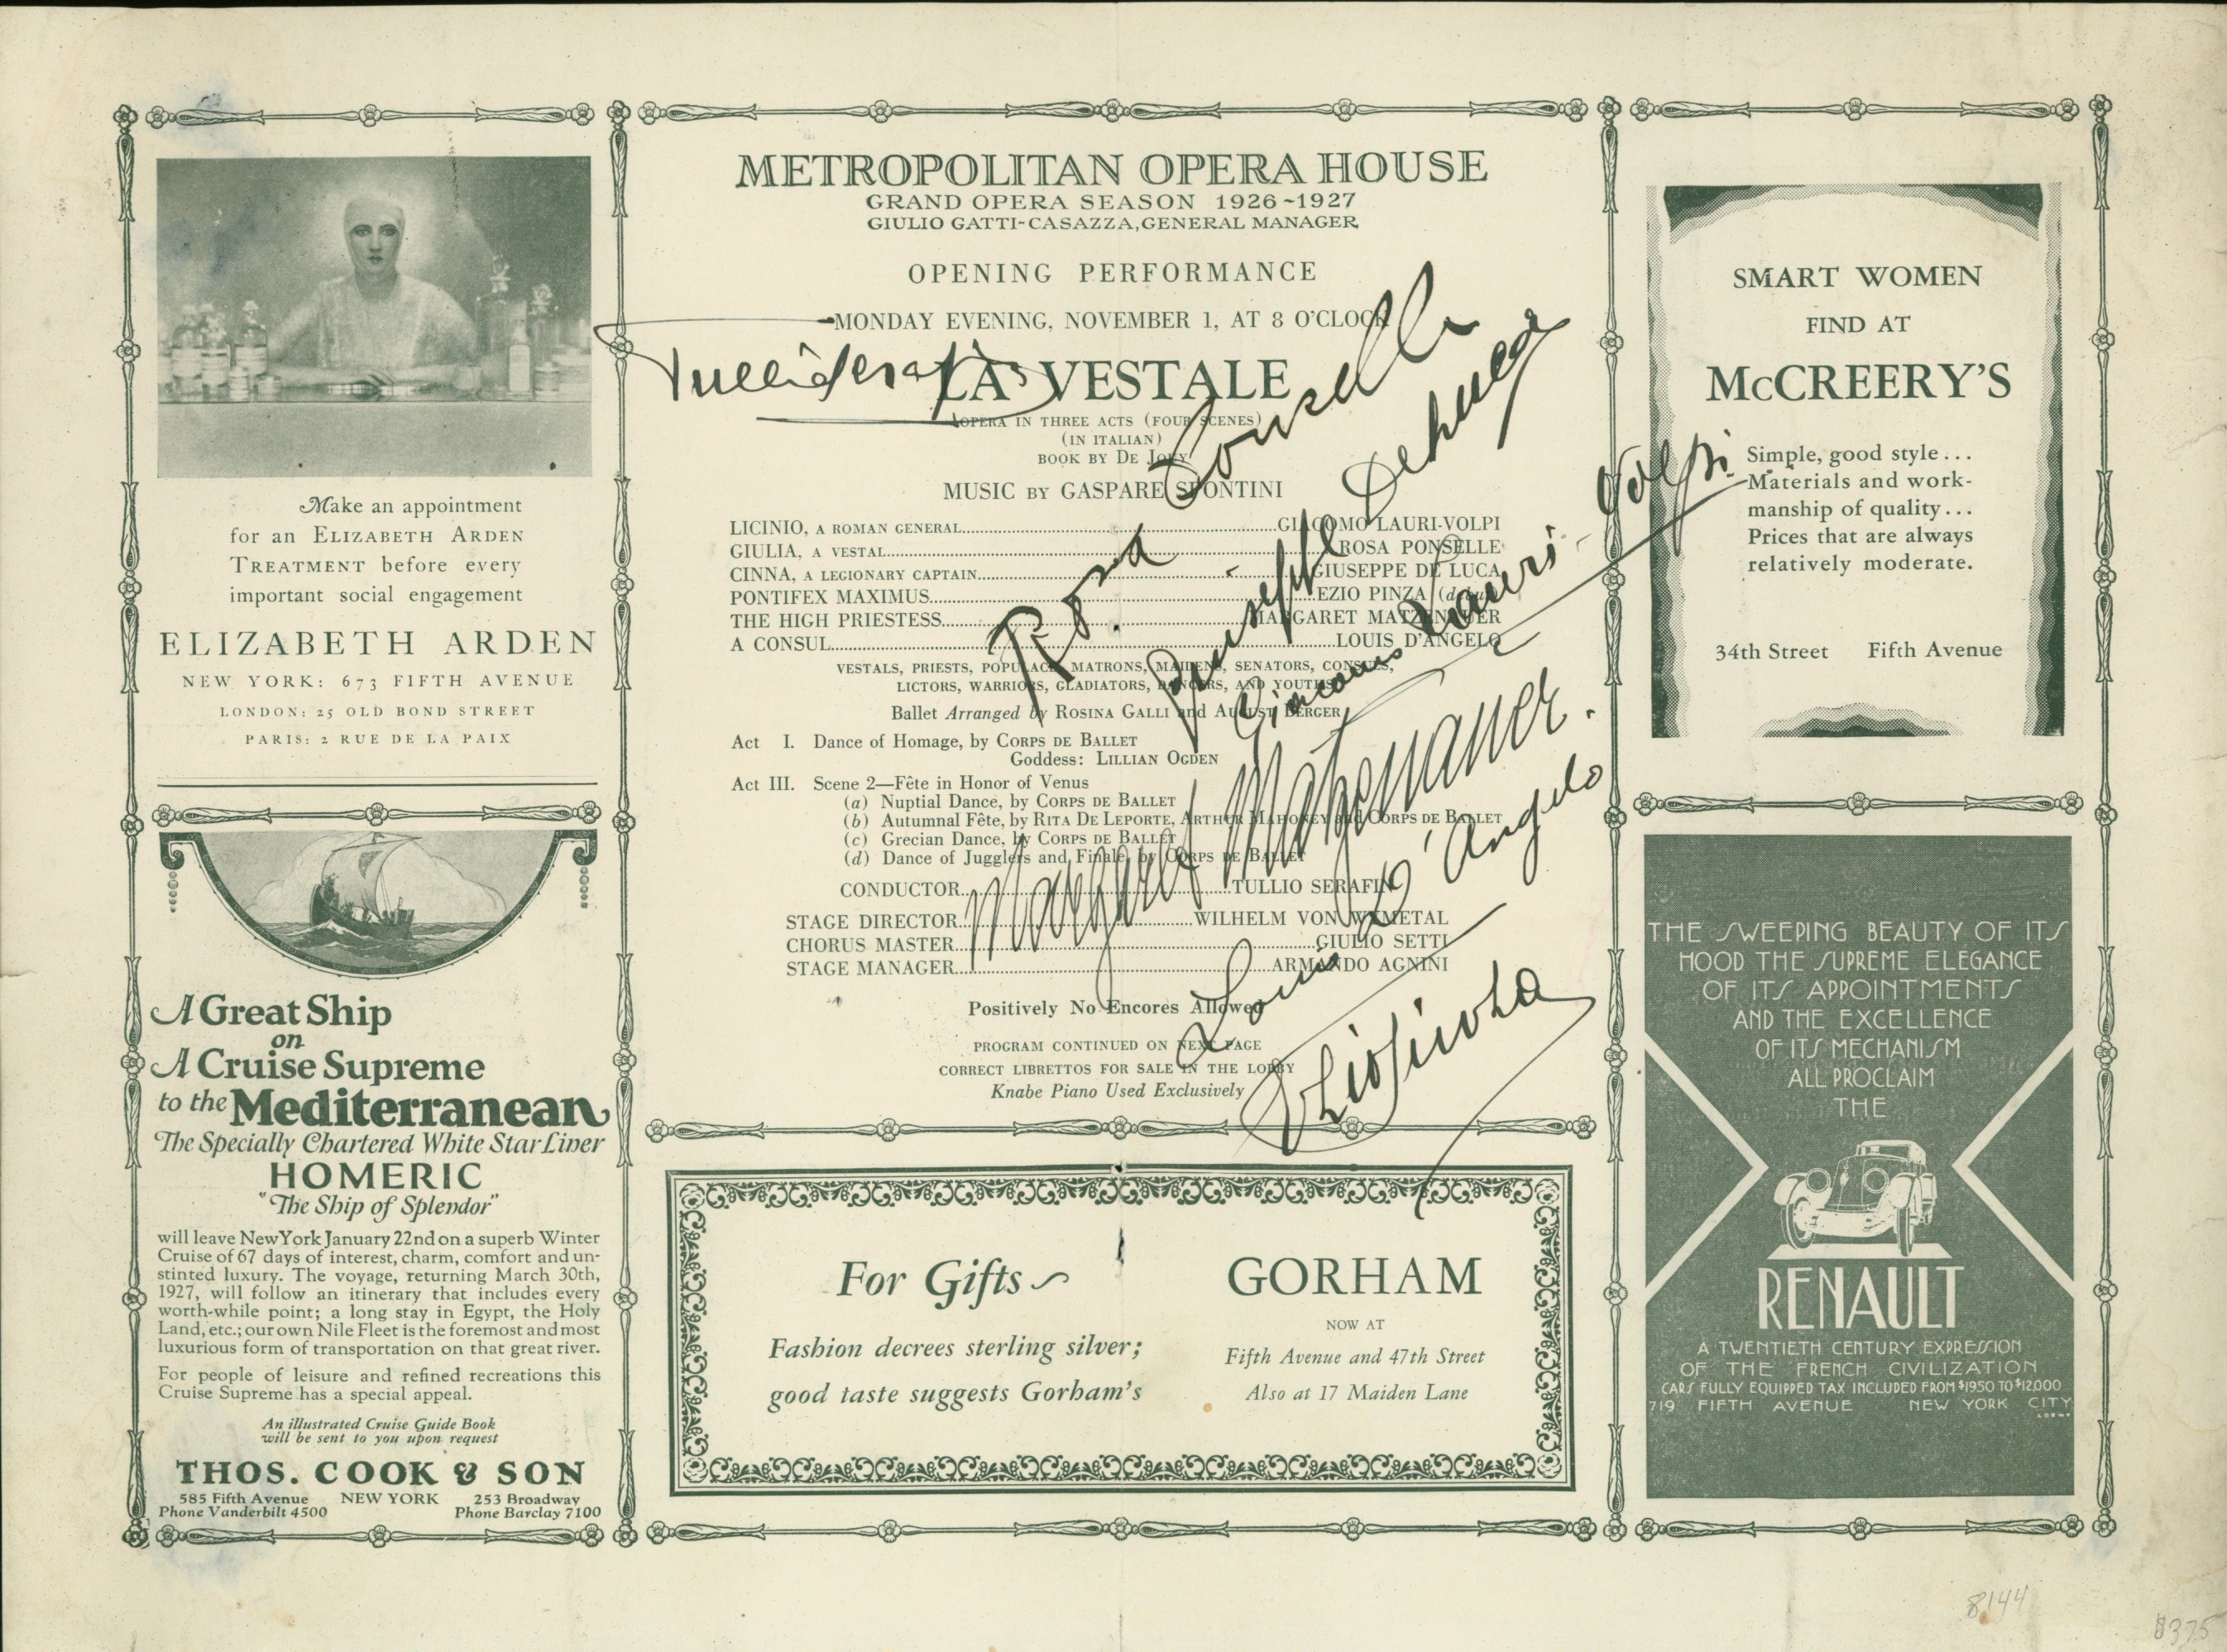 Metropolitan Opera Signed 1926 Program Of Spontini's La Vestale - Signed By The Entire Cast... - (2415)